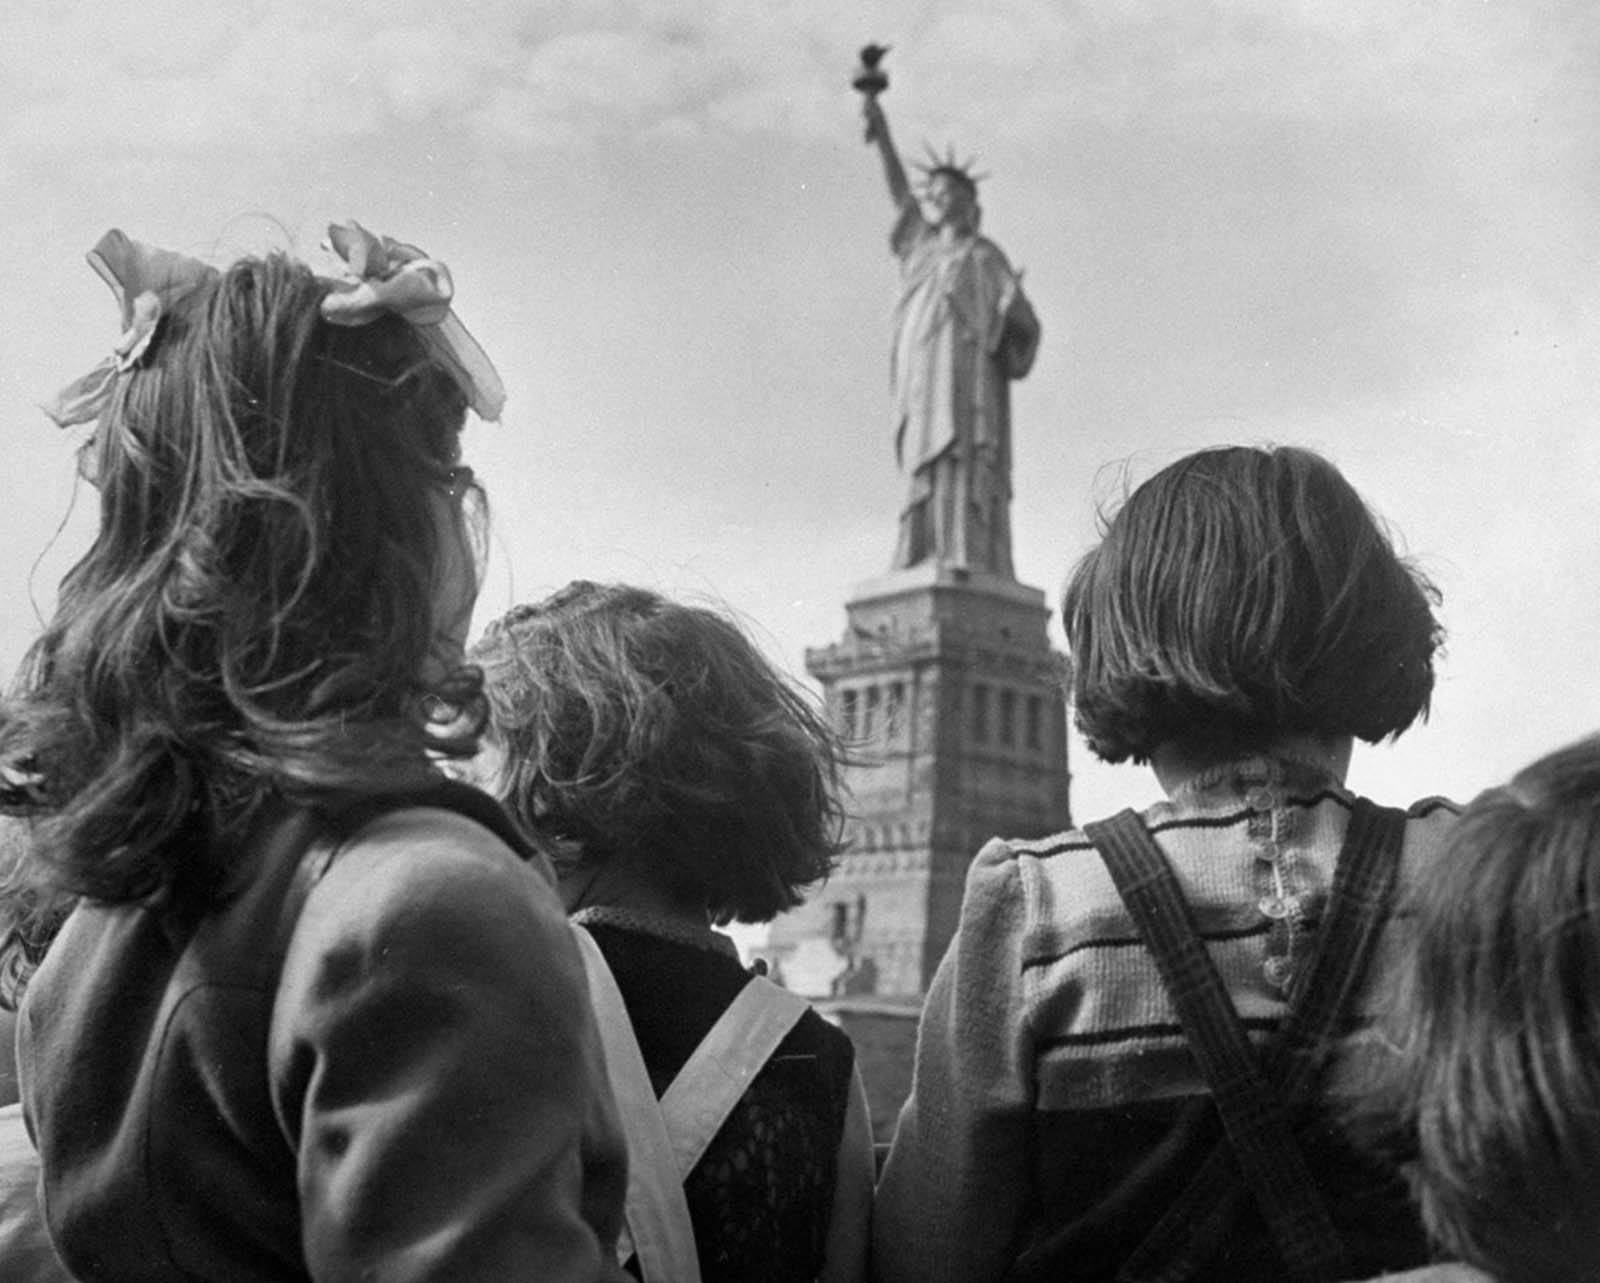 In 1946, refugee children gaze at the Statue of Liberty from the railing of a boat.